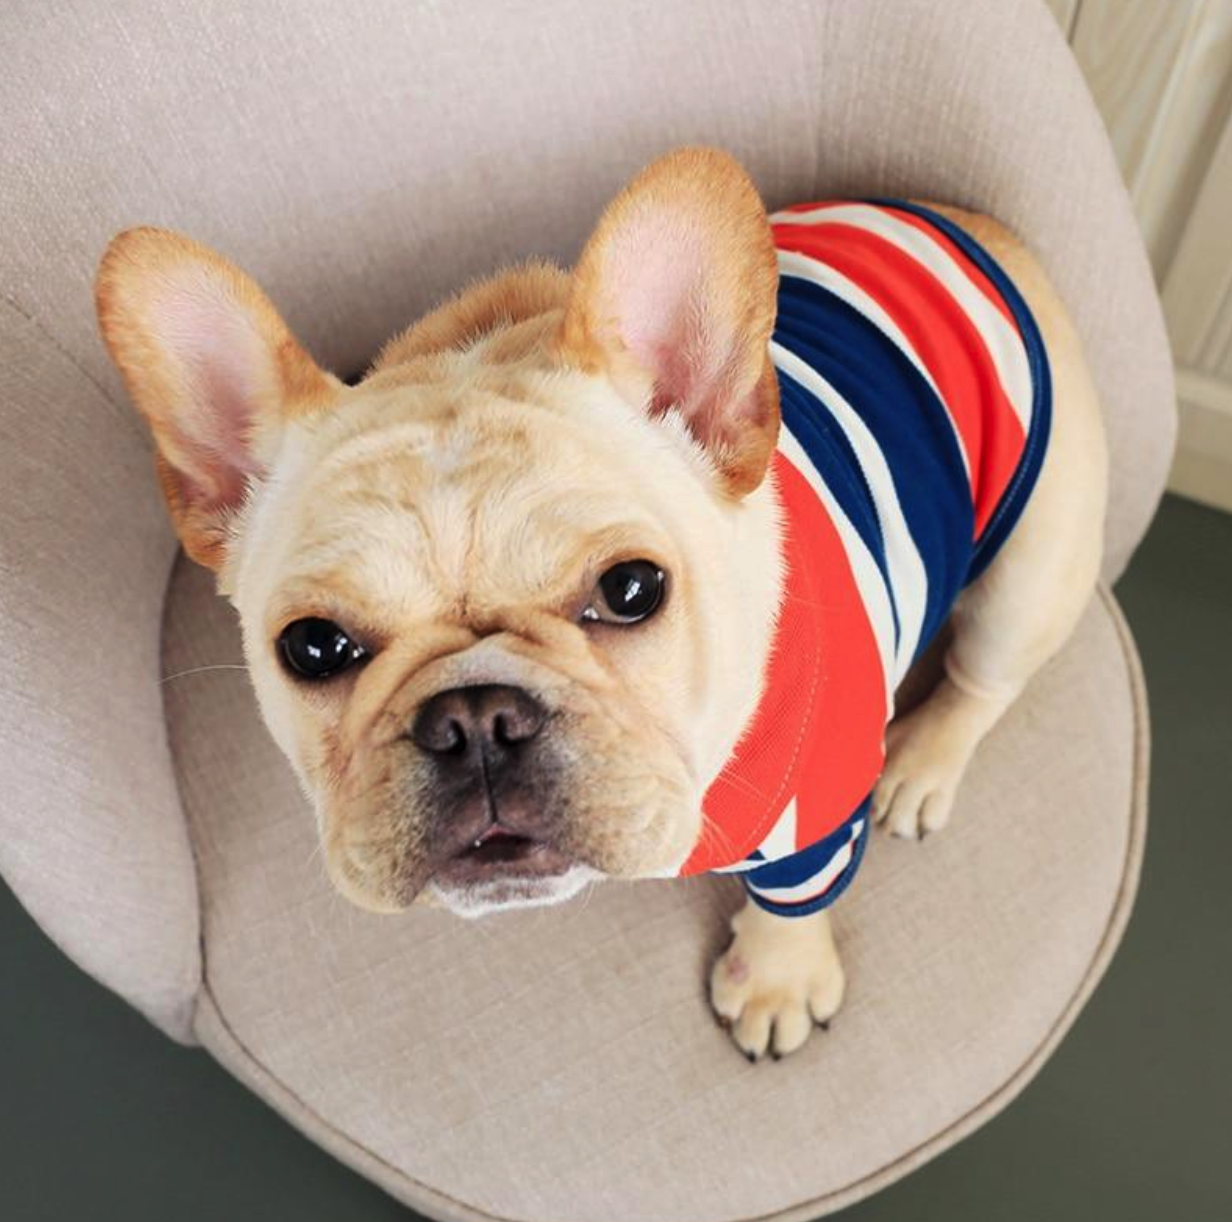 Going To A Fancy Party Or Out On The Town Get Your Frenchie Looking Sharp With This Adorabl With Images Blue And White Striped Shirt French Bulldog Clothes French Bulldog